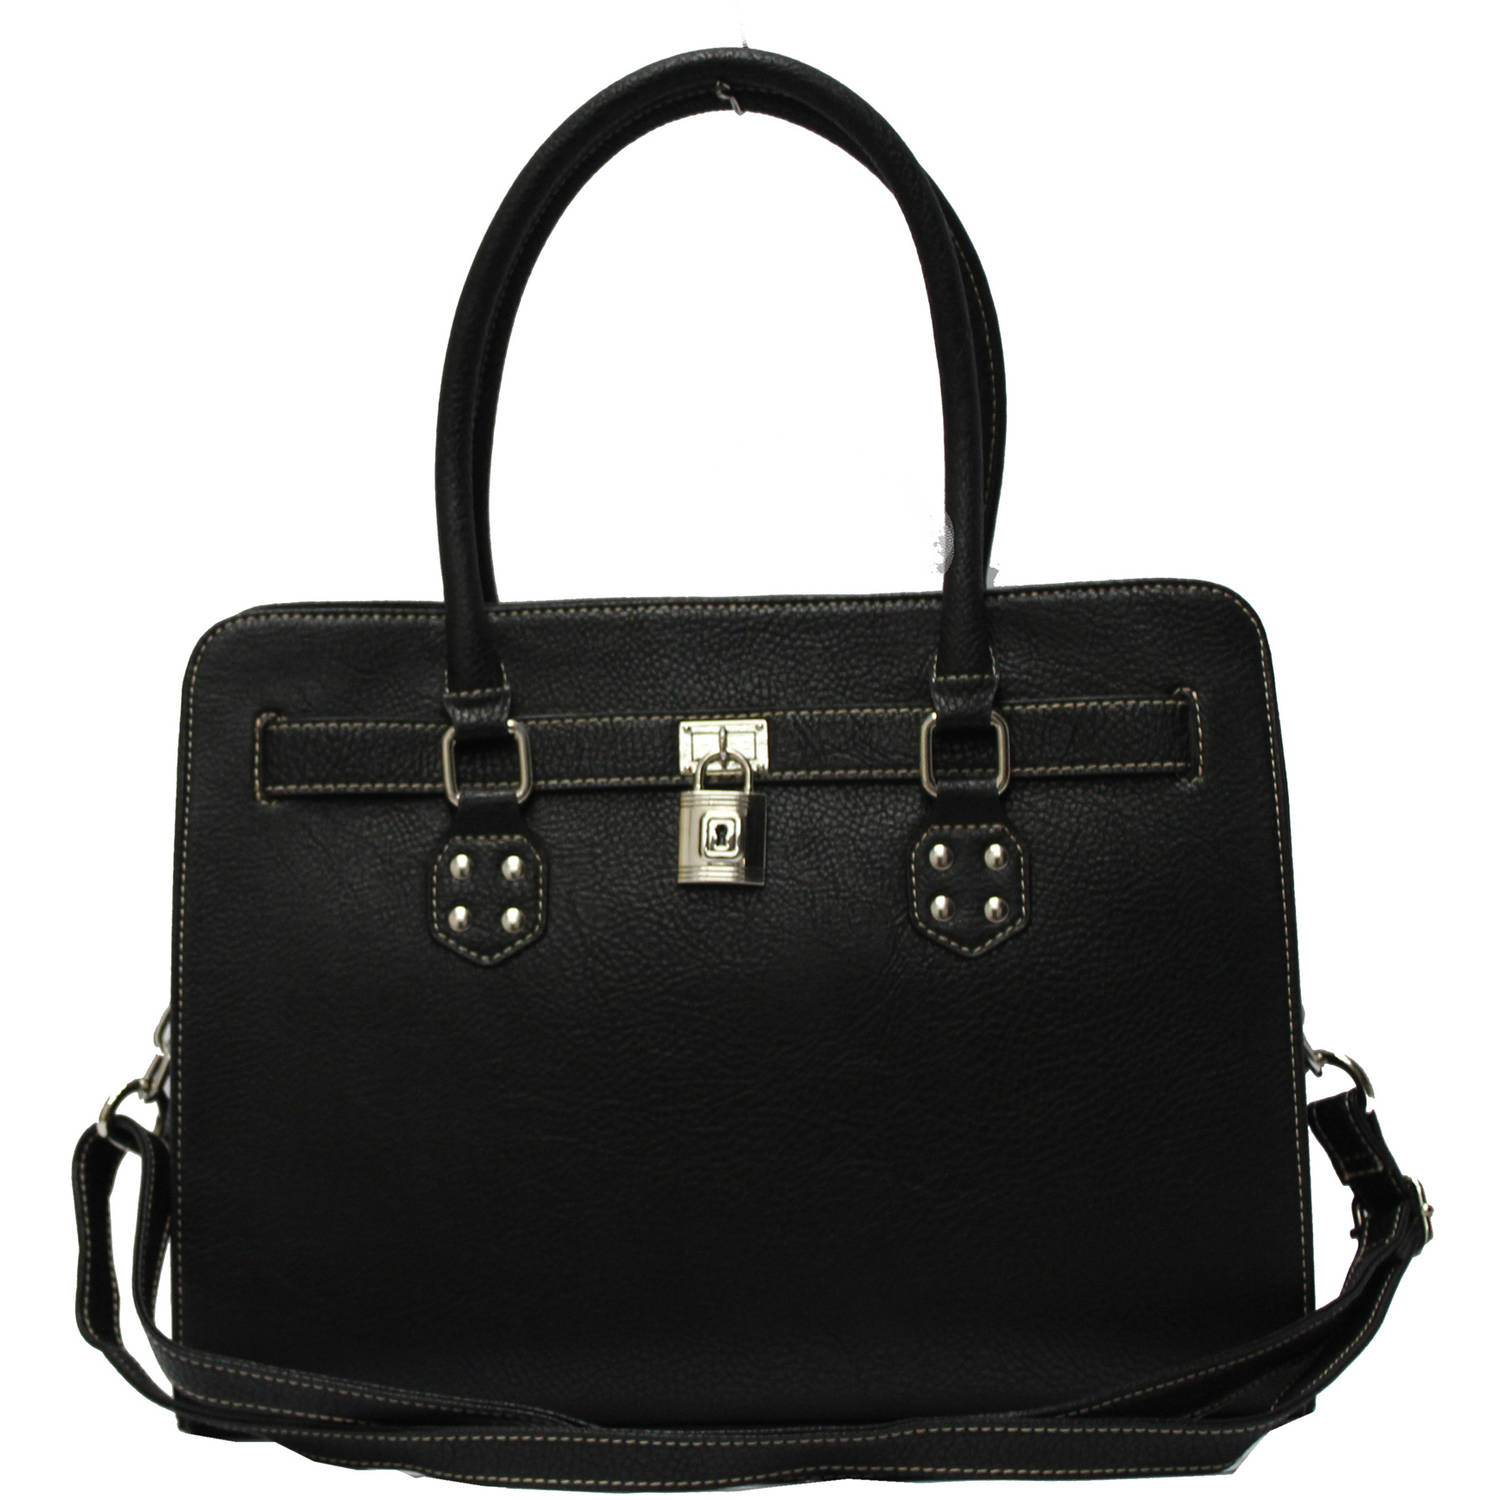 George Women's Knightly Belted Tote with Strap